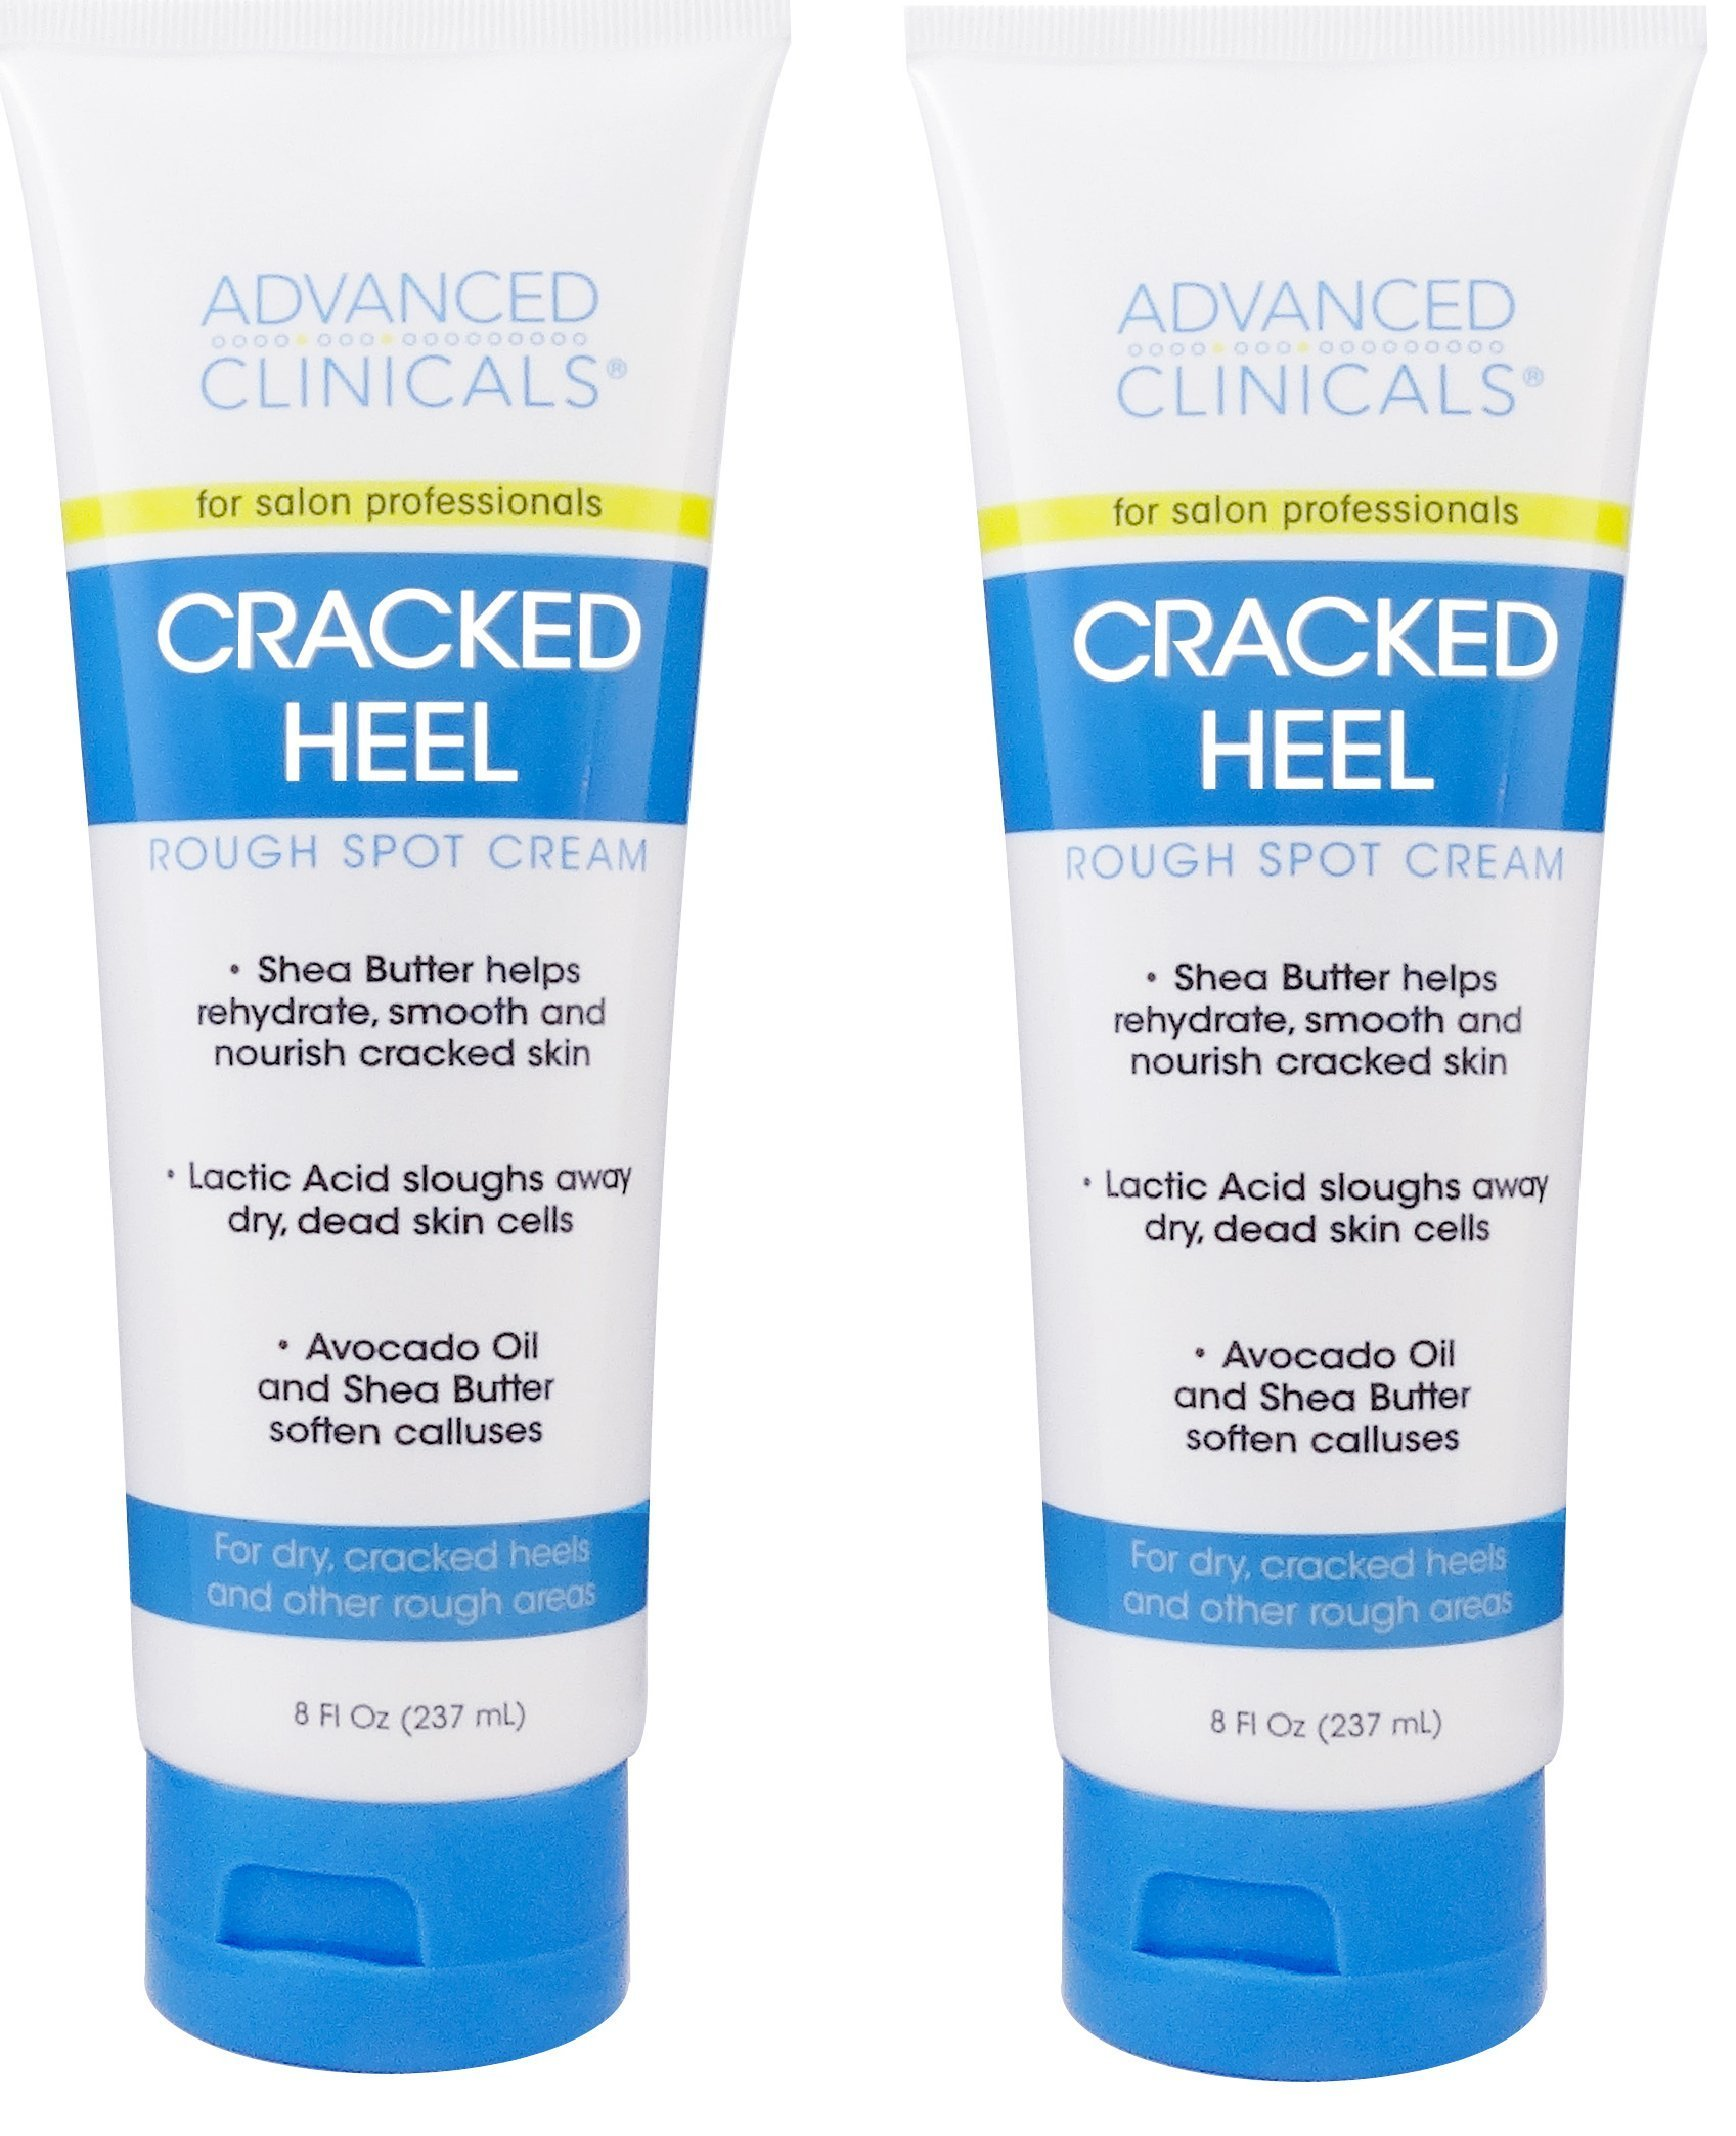 Advanced Clinicals Cracked Heel Cream for dry feet, rough spots, and calluses. (Two - 8oz) by Advanced Clinicals